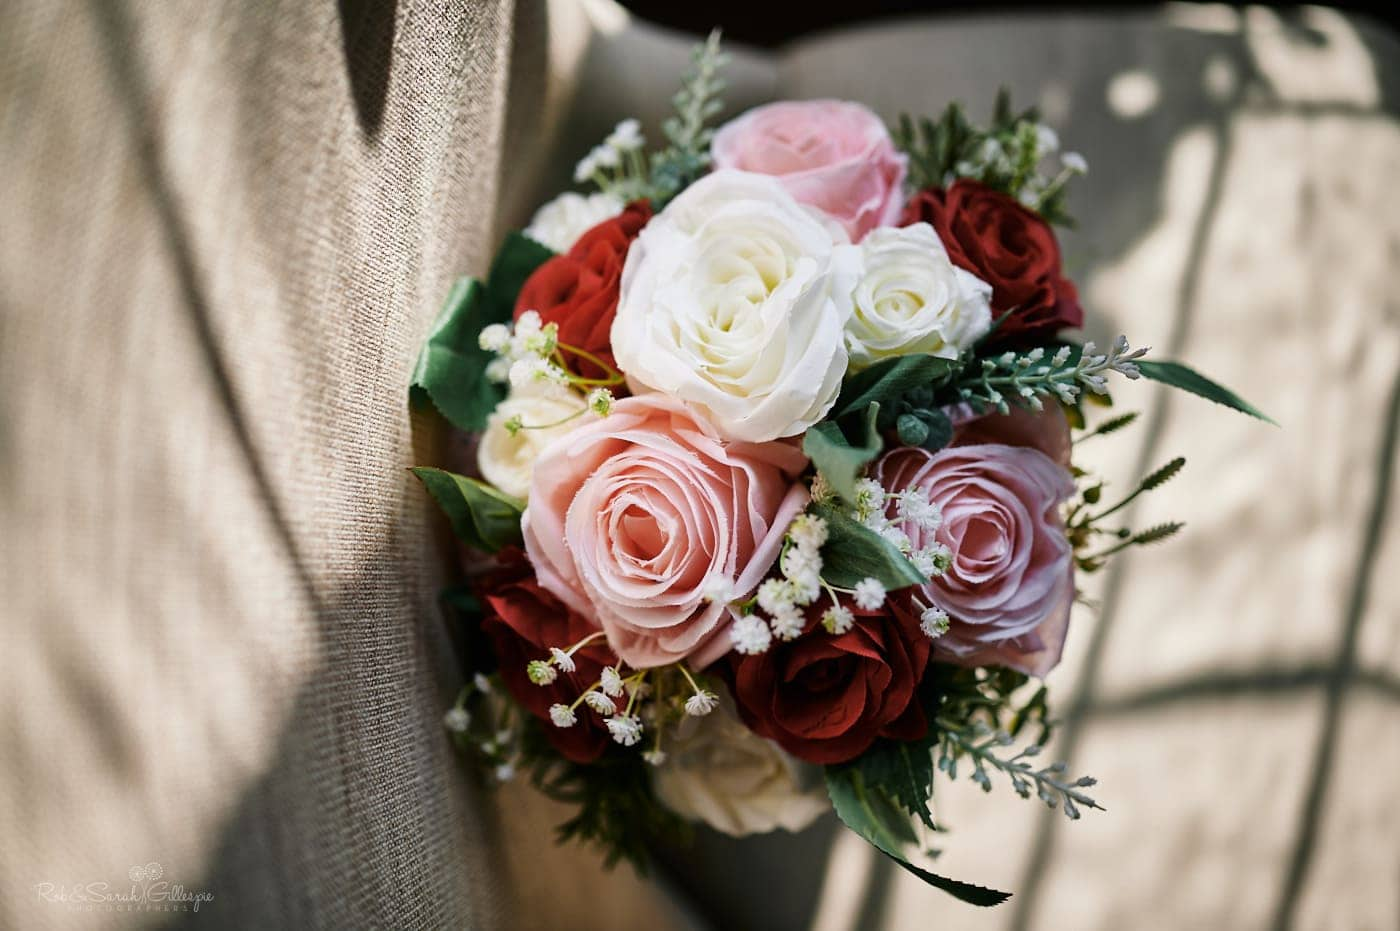 Bridal bouquet on chair in strong light